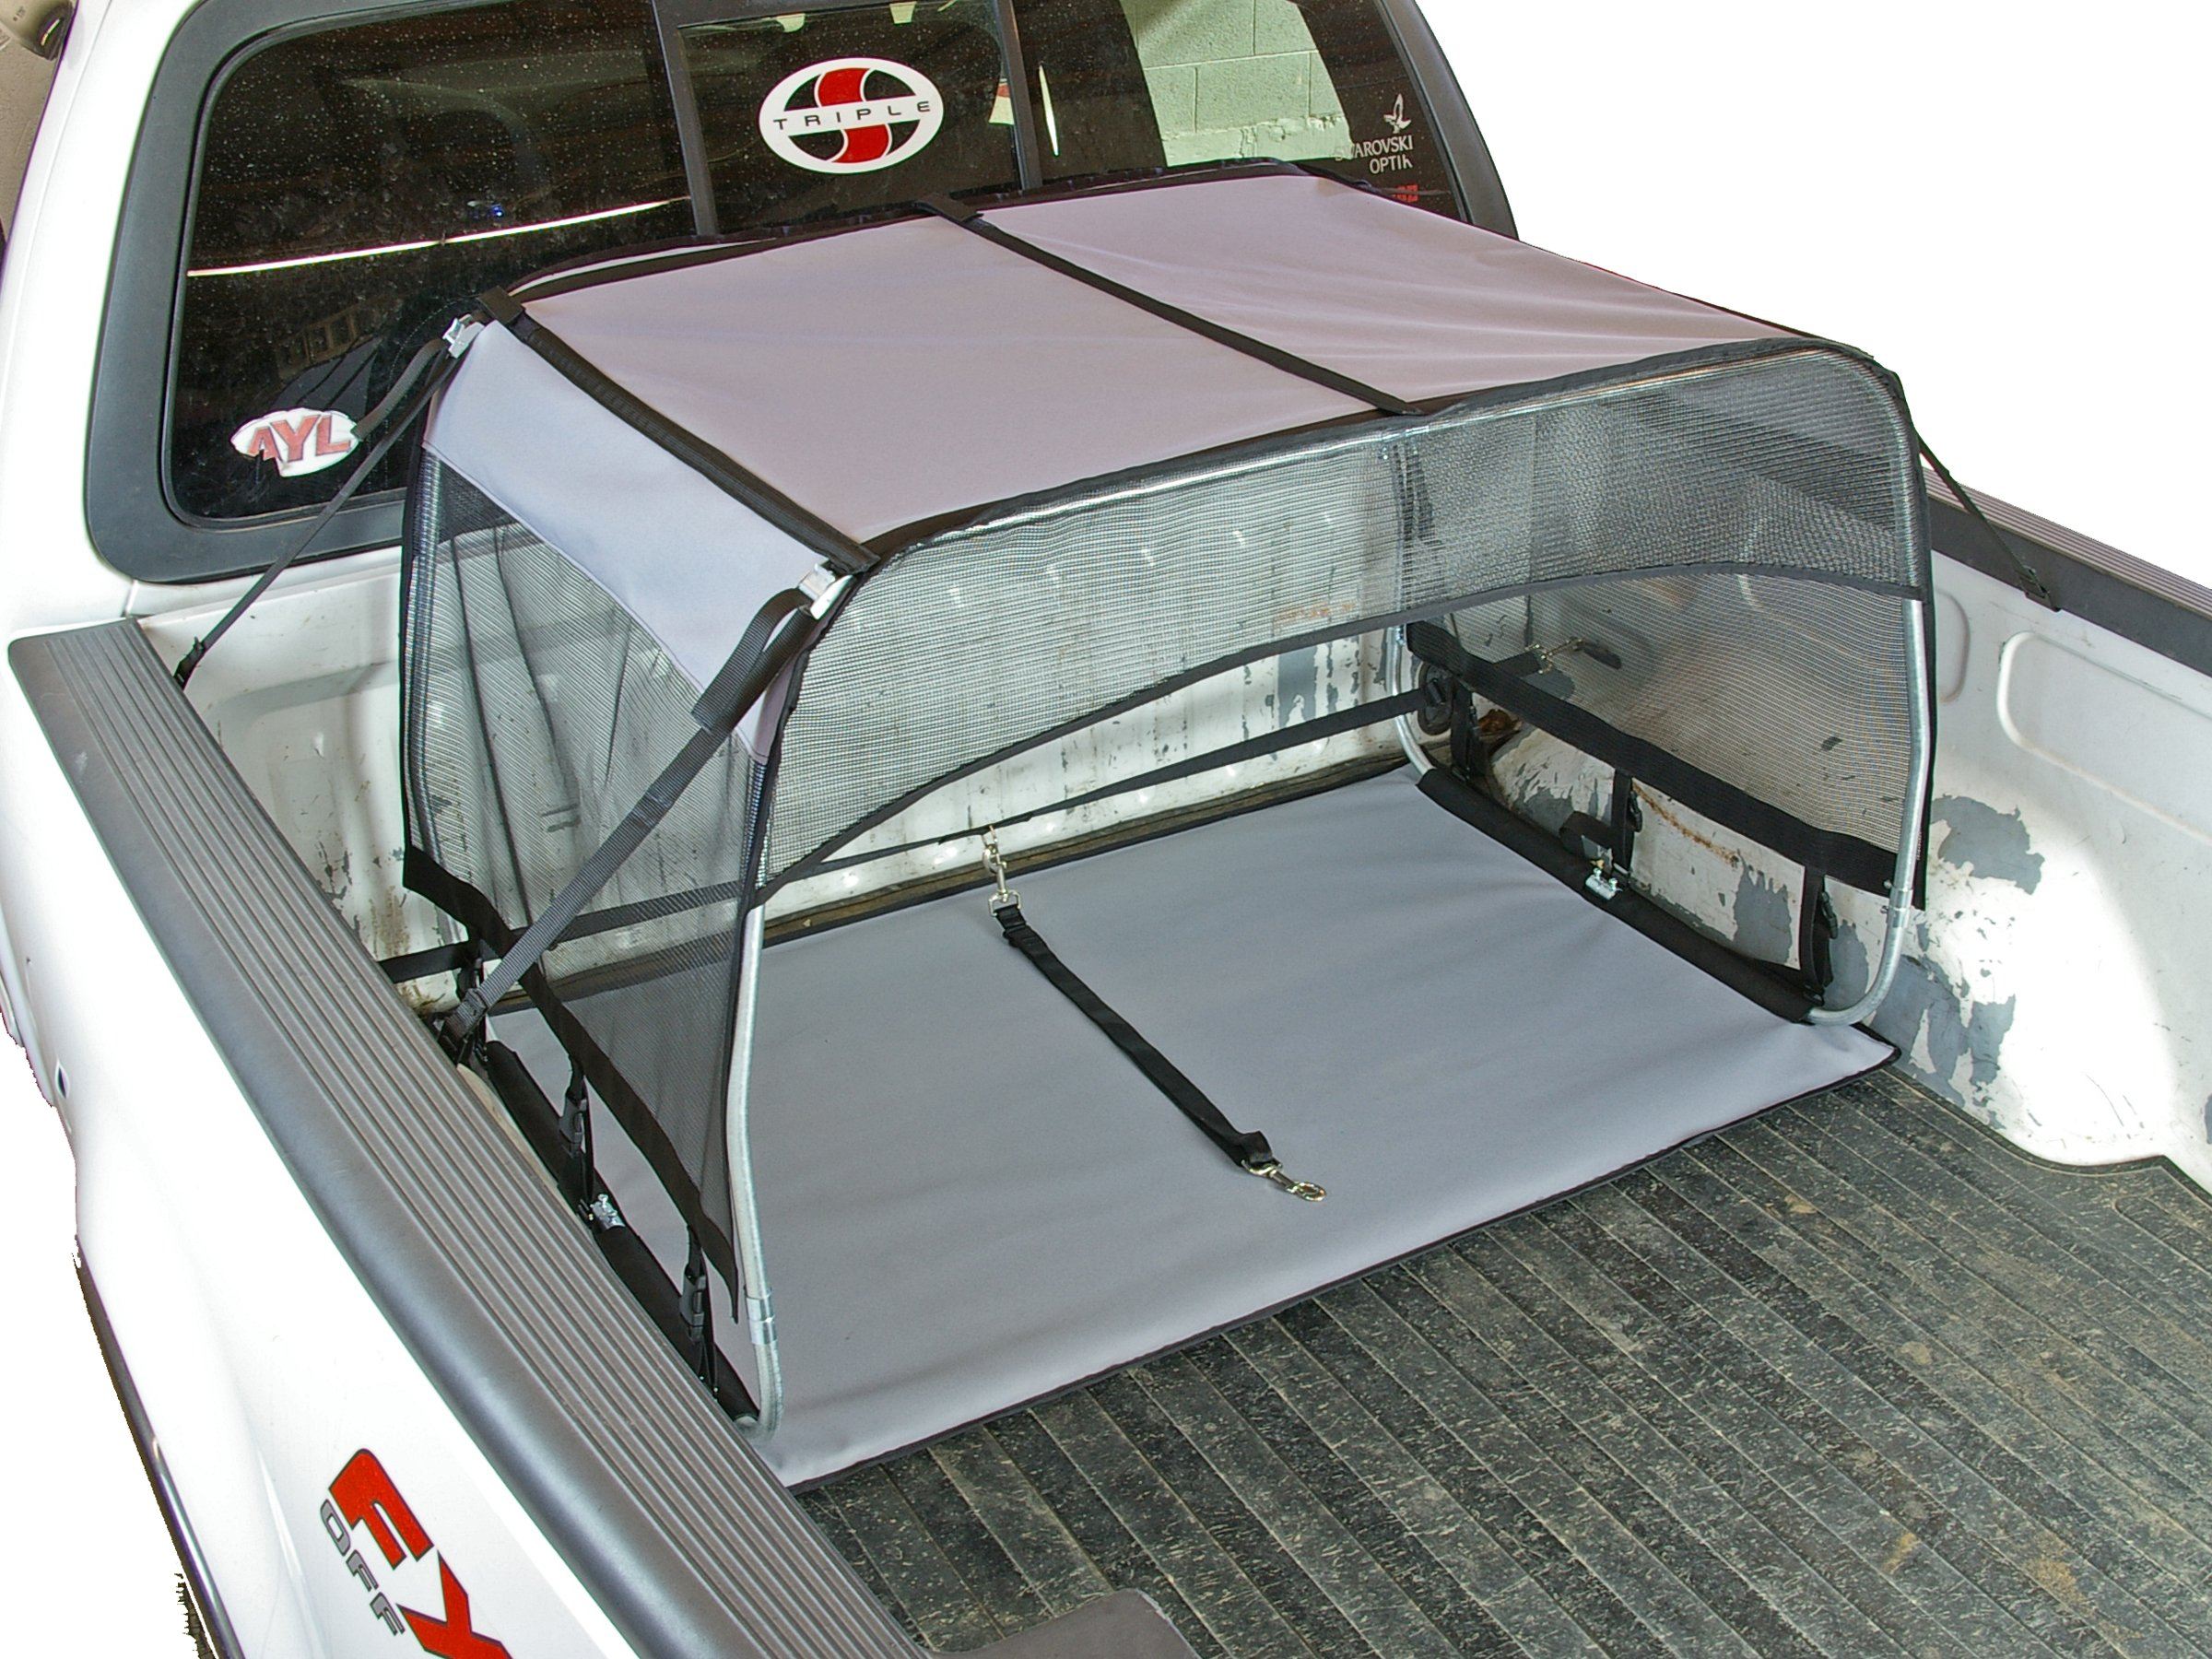 Bushwhacker® - Paws n Claws K9 Canopy w/ Pad and Tether for Truck Beds - Dog Shade Shelter Kennel Hound Hut Tent Leash Pup Restraint Carrier Lead Barrier Vehicle Crate Bed Harness House Shelter Cover Box Chain Tie Out by Bushwhacker